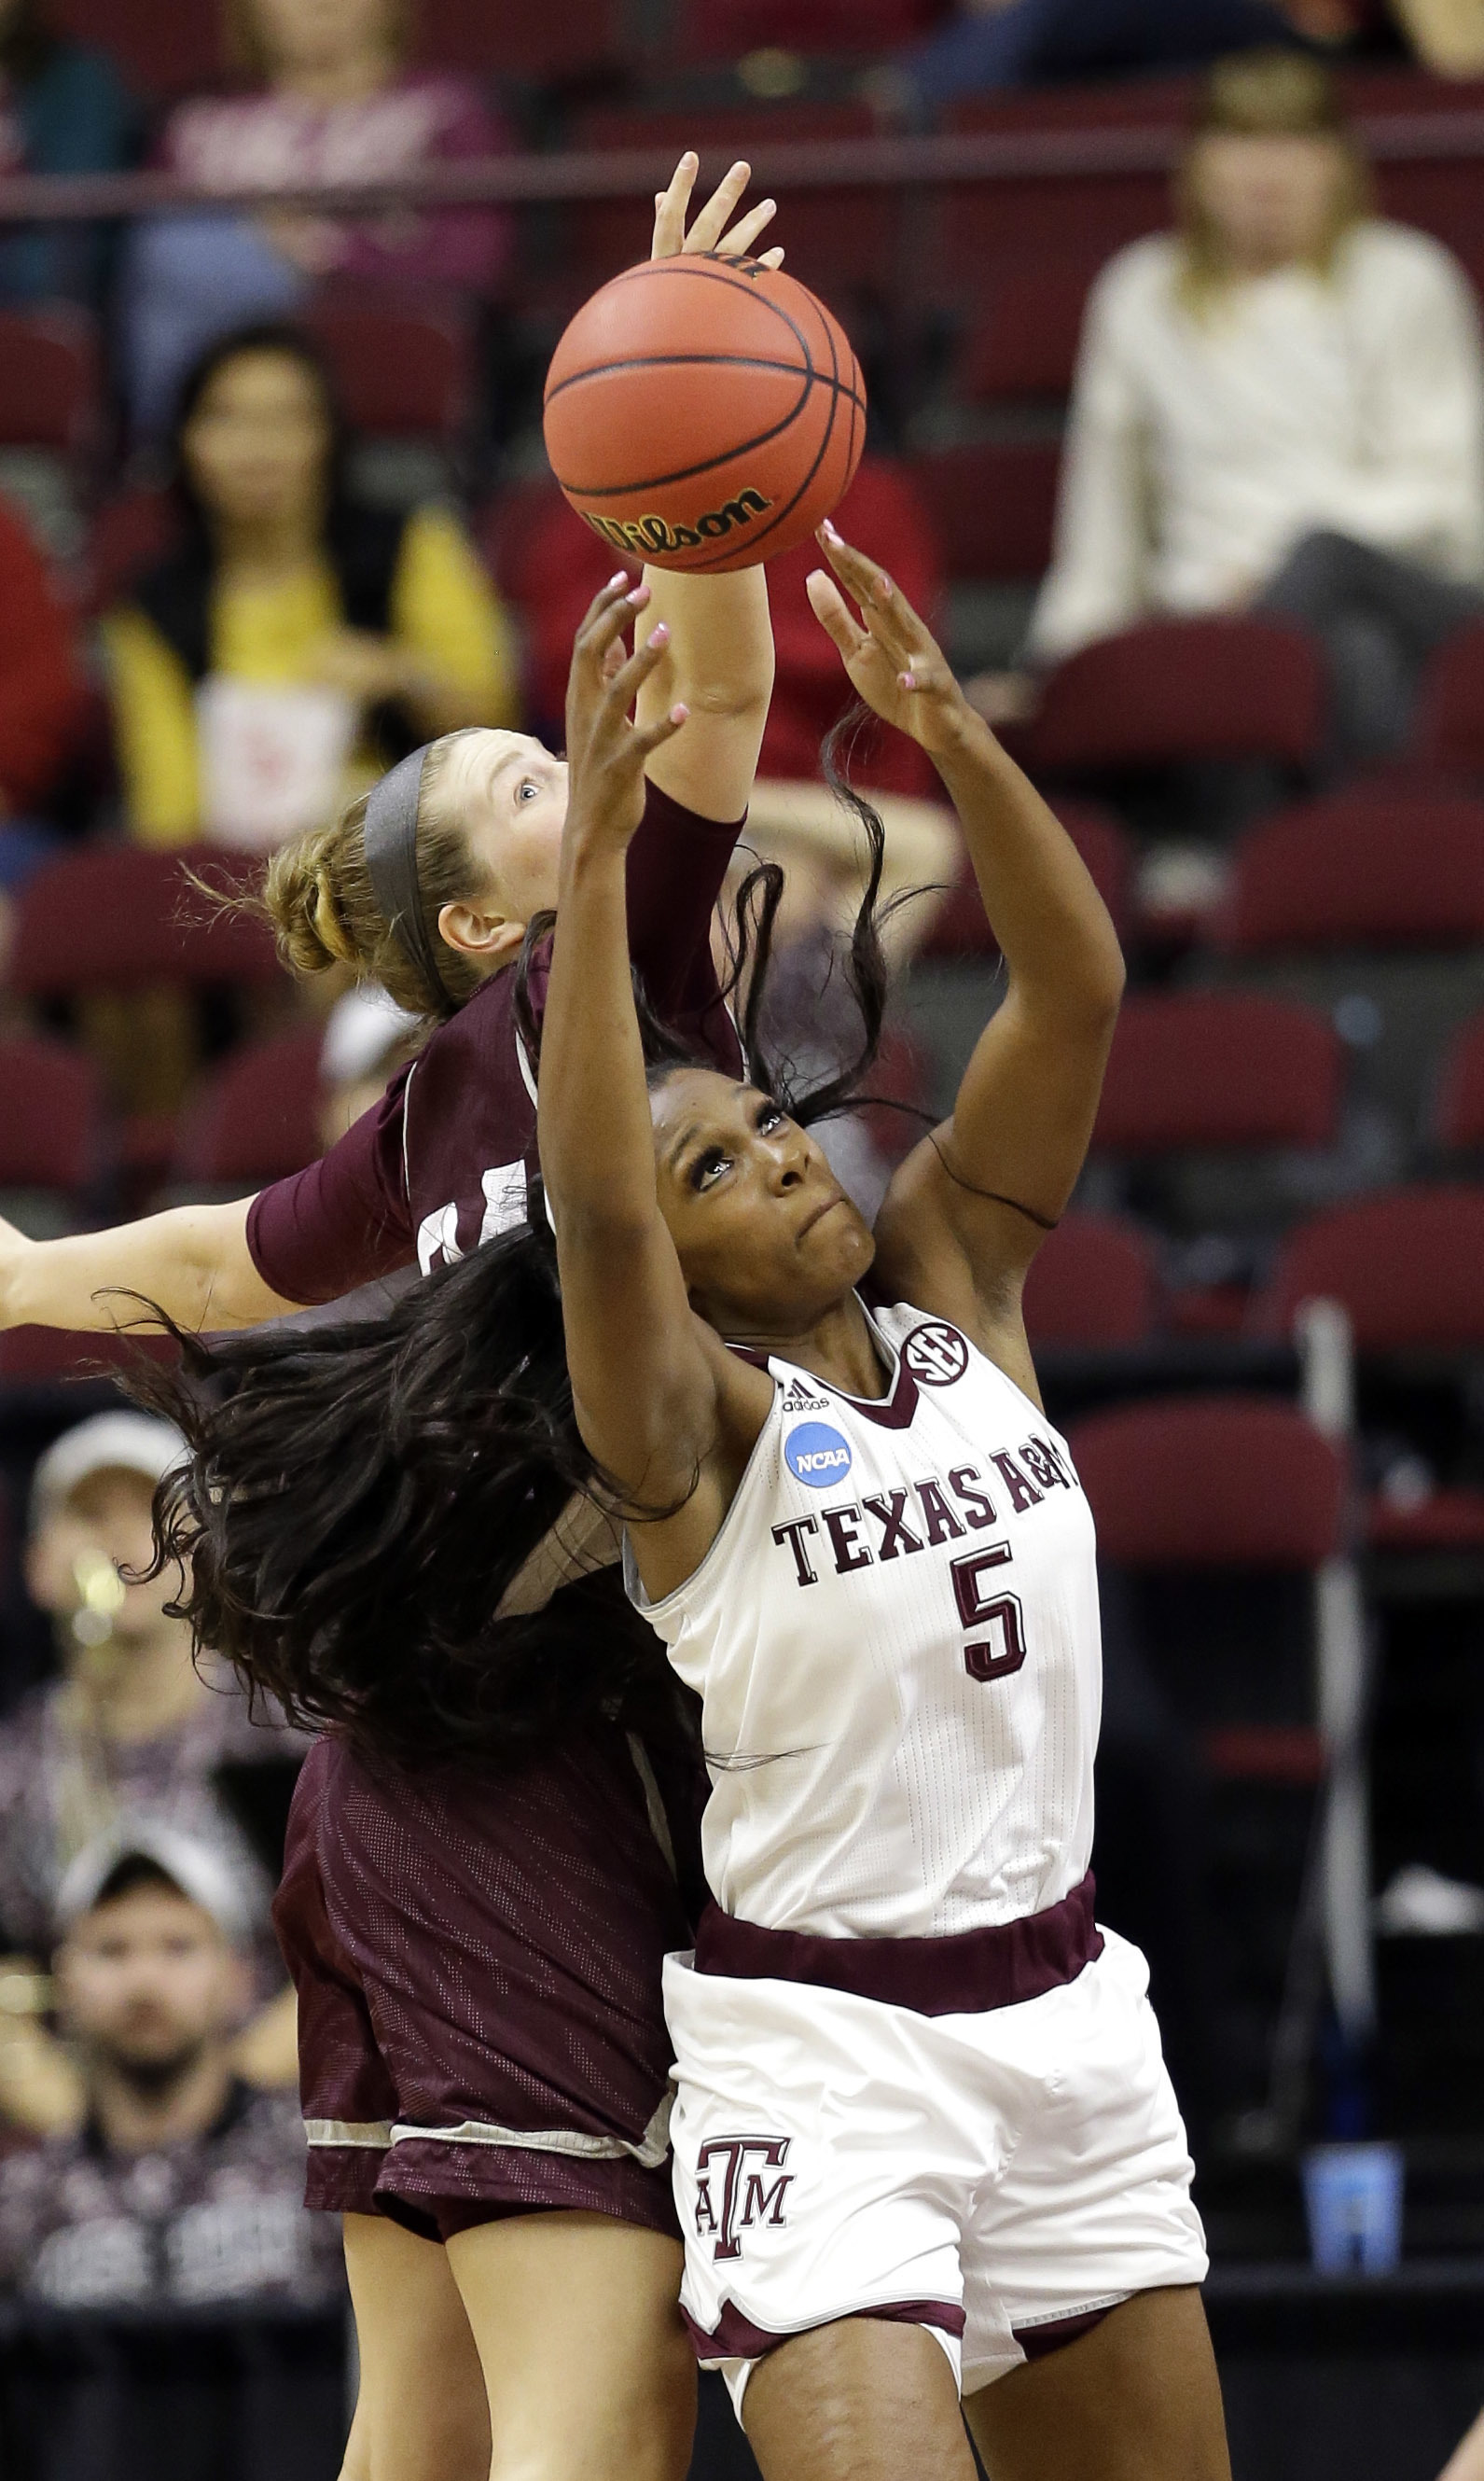 Texas A&M's Anriel Howard (5) pulls down a rebound in front of Missouri State's Rachel Swartz during the second half of a first-round women's college basketball game in the NCAA Tournament Saturday, March 19, 2016, in College Station, Texas. Texas A&M won